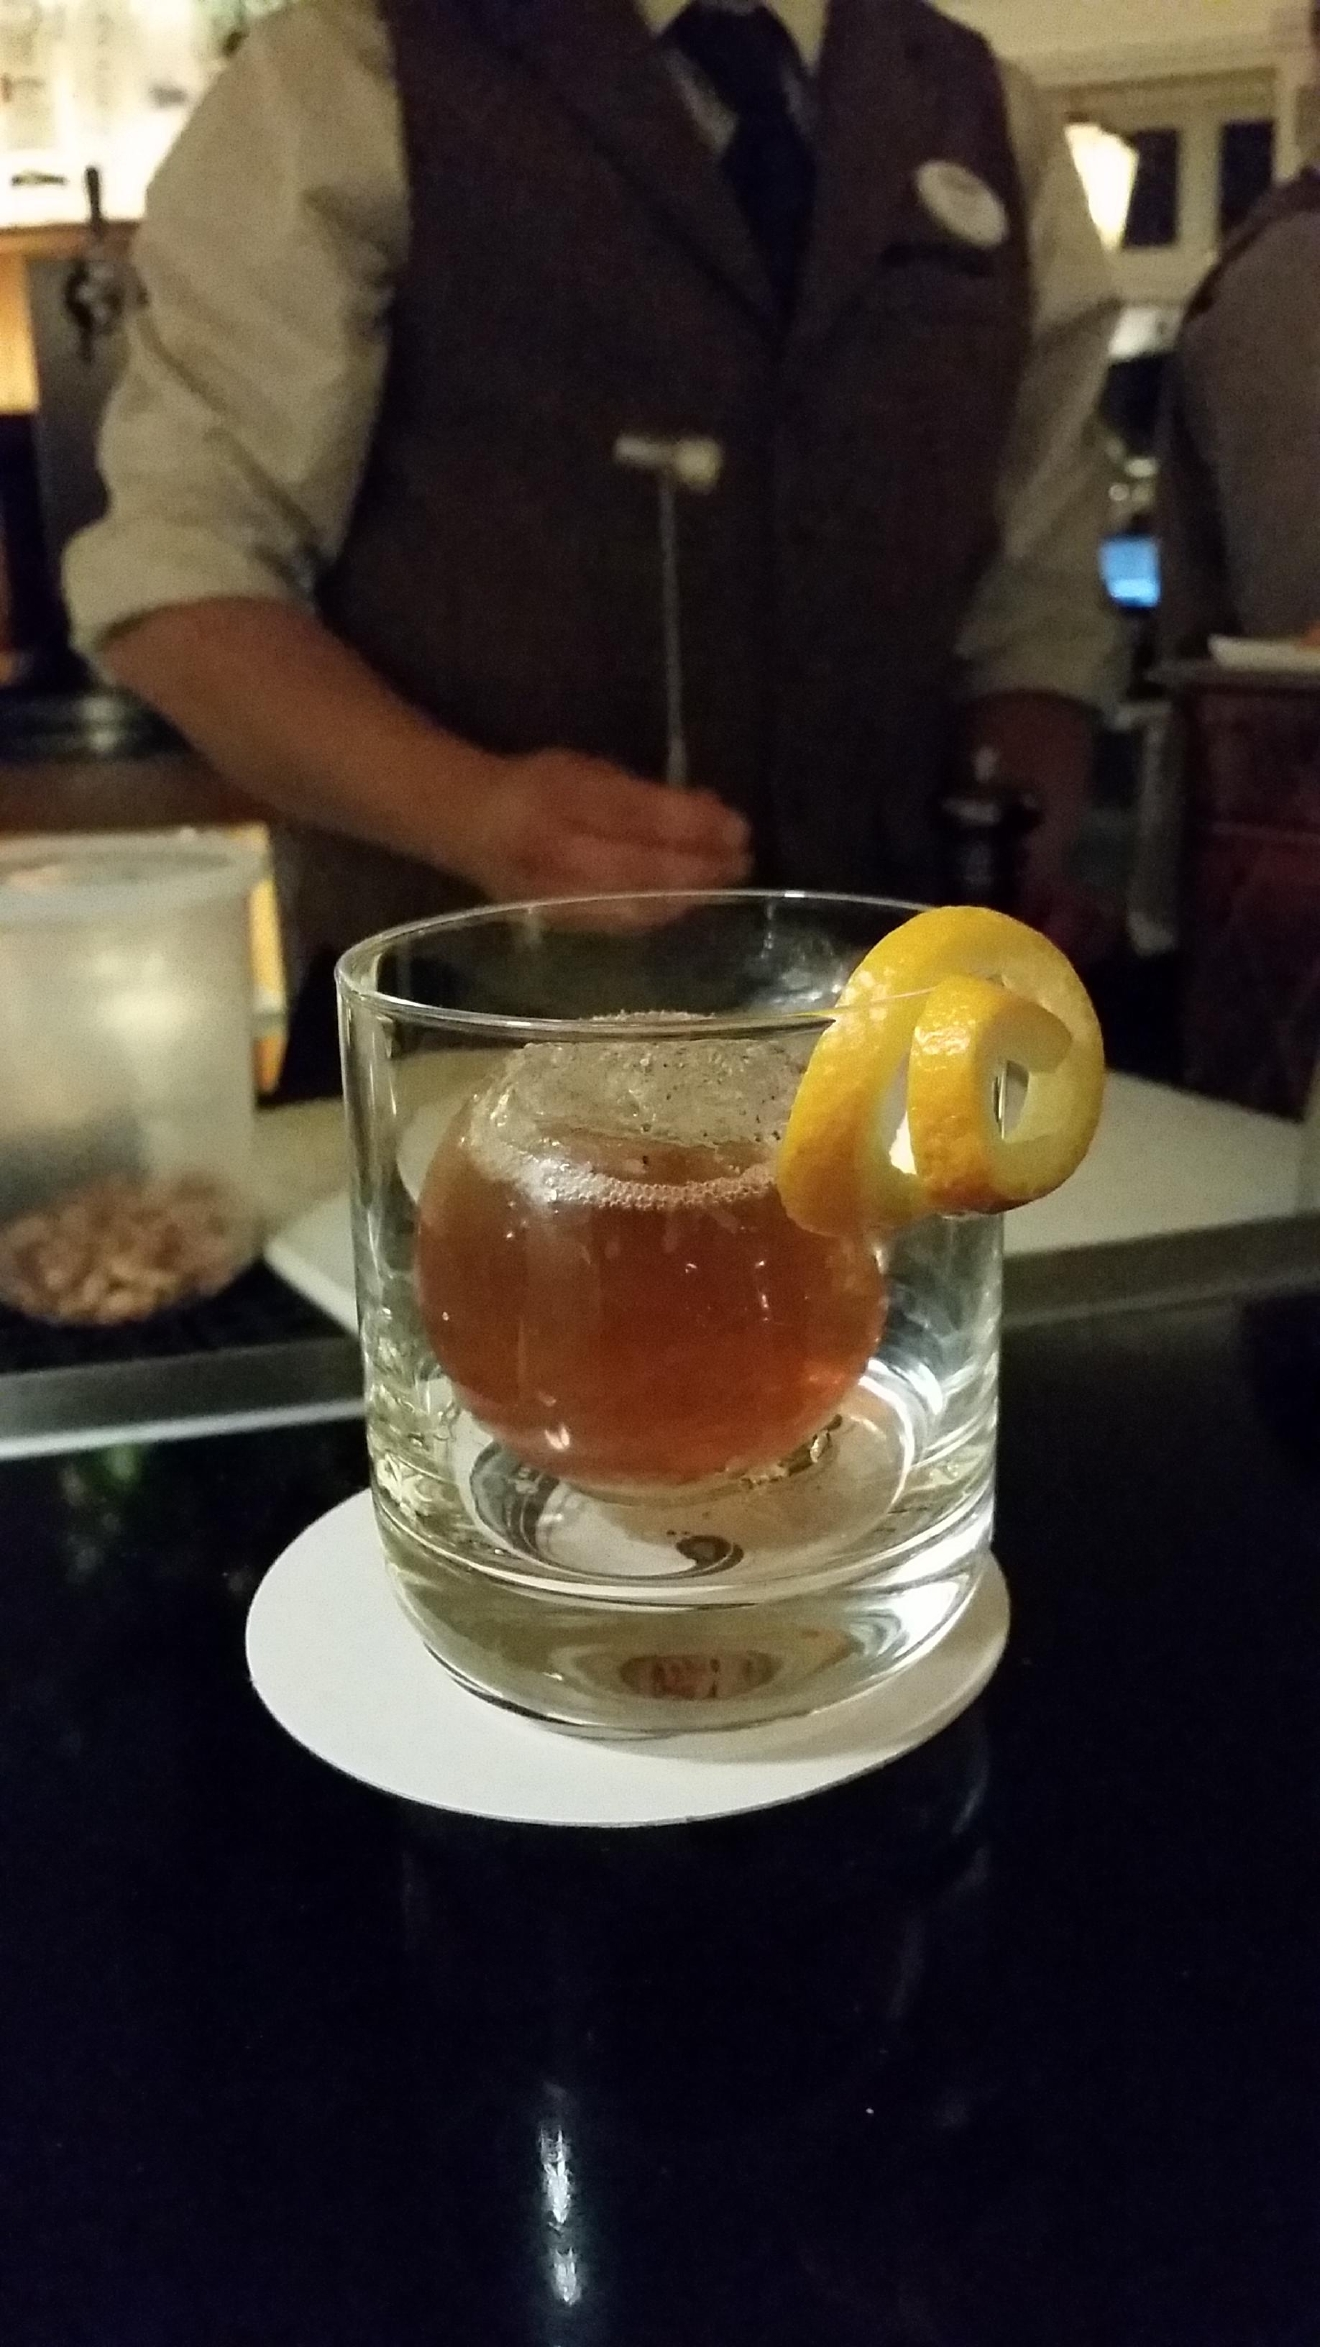 Sphered Fashioned at Circular Bar (Kelly Magyarics)